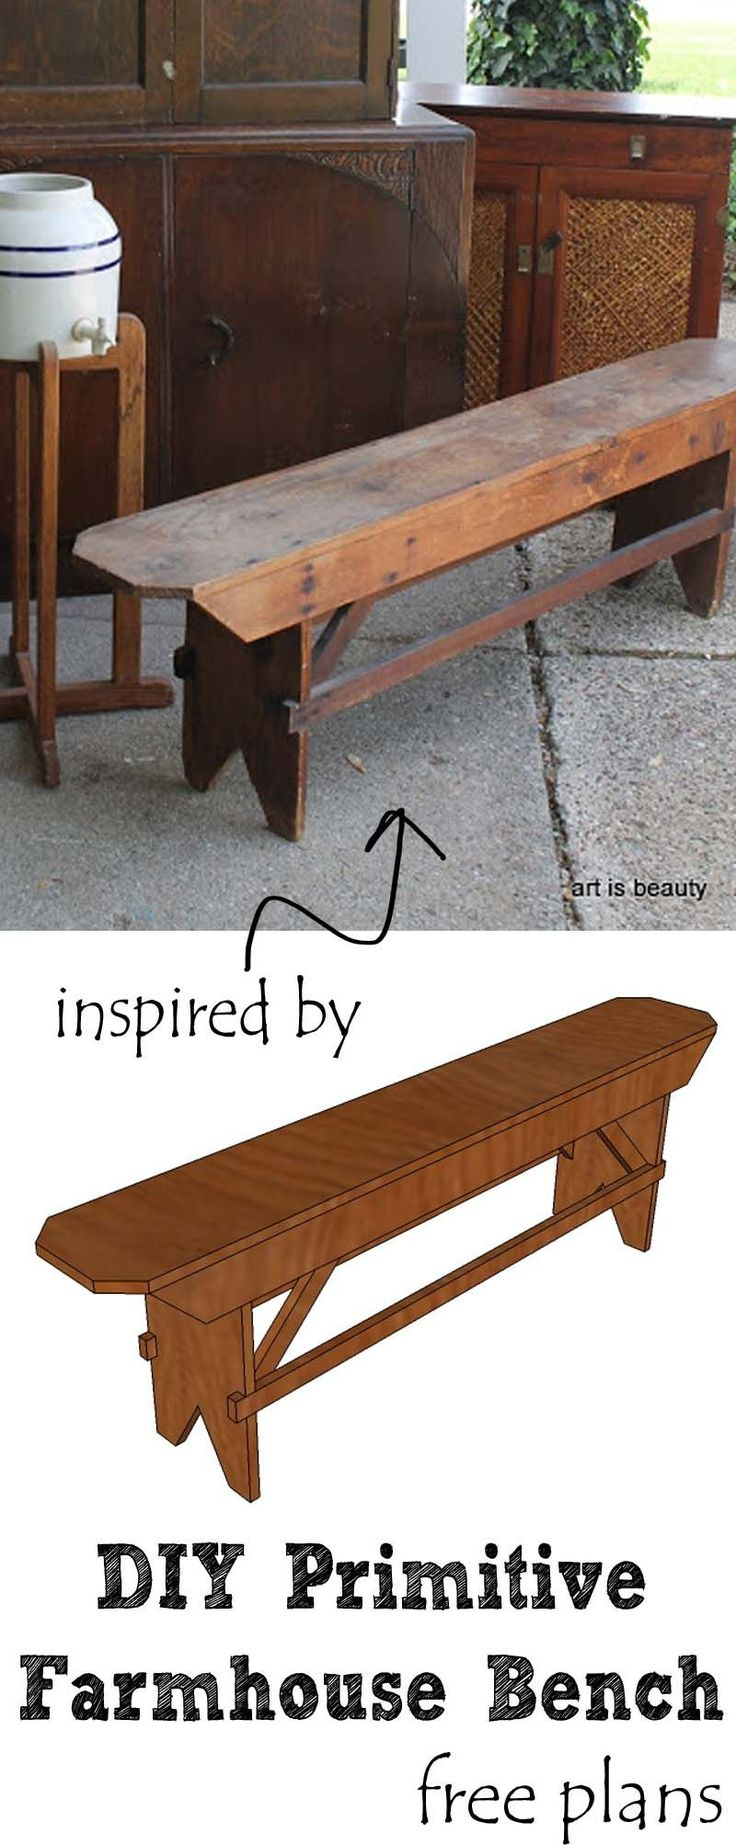 Diy primitive furniture - Build A Beautiful Diy Primitive Farmhouse Bench For Your Farmhouse Table Or Extra Seating Free